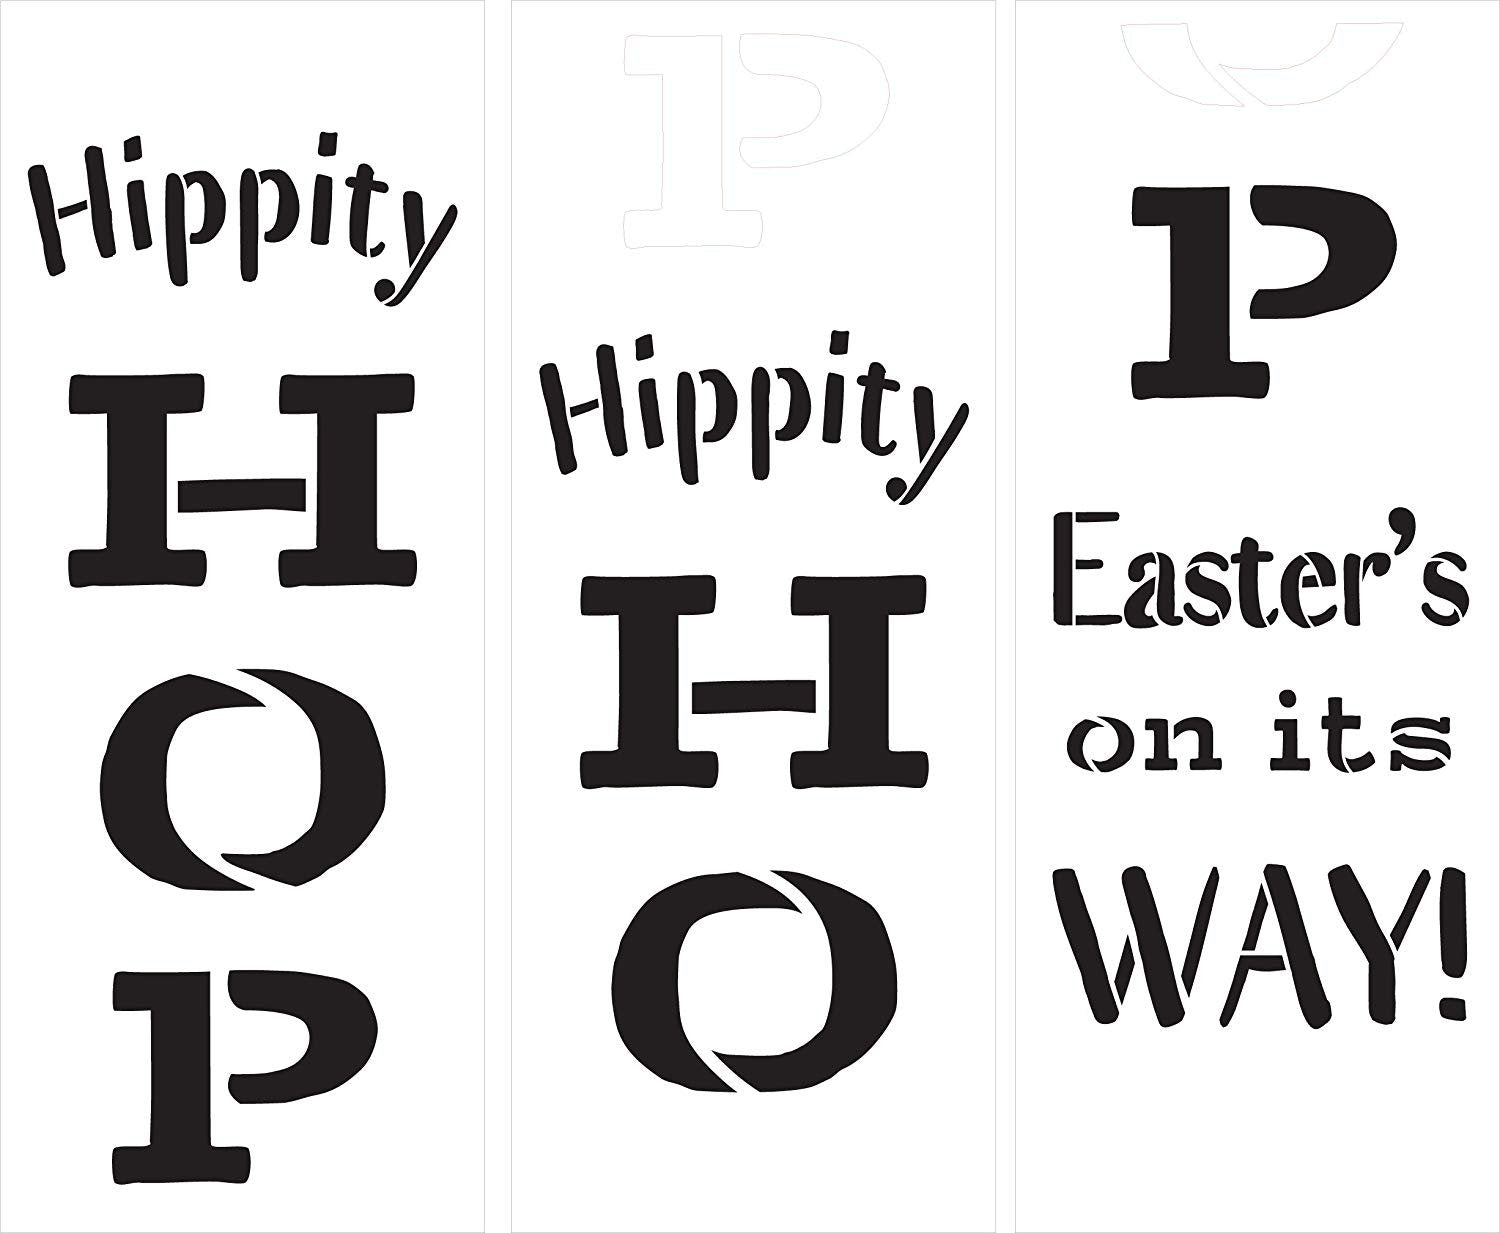 Hippity Hop Easter's On Its Way Tall Porch Stencil by StudioR12 | 3pc | DIY Large Vertical Spring Home Decor | Front Door Entryway | Craft & Paint Wood Leaner Sign | Reusable Mylar Template | Size 6ft